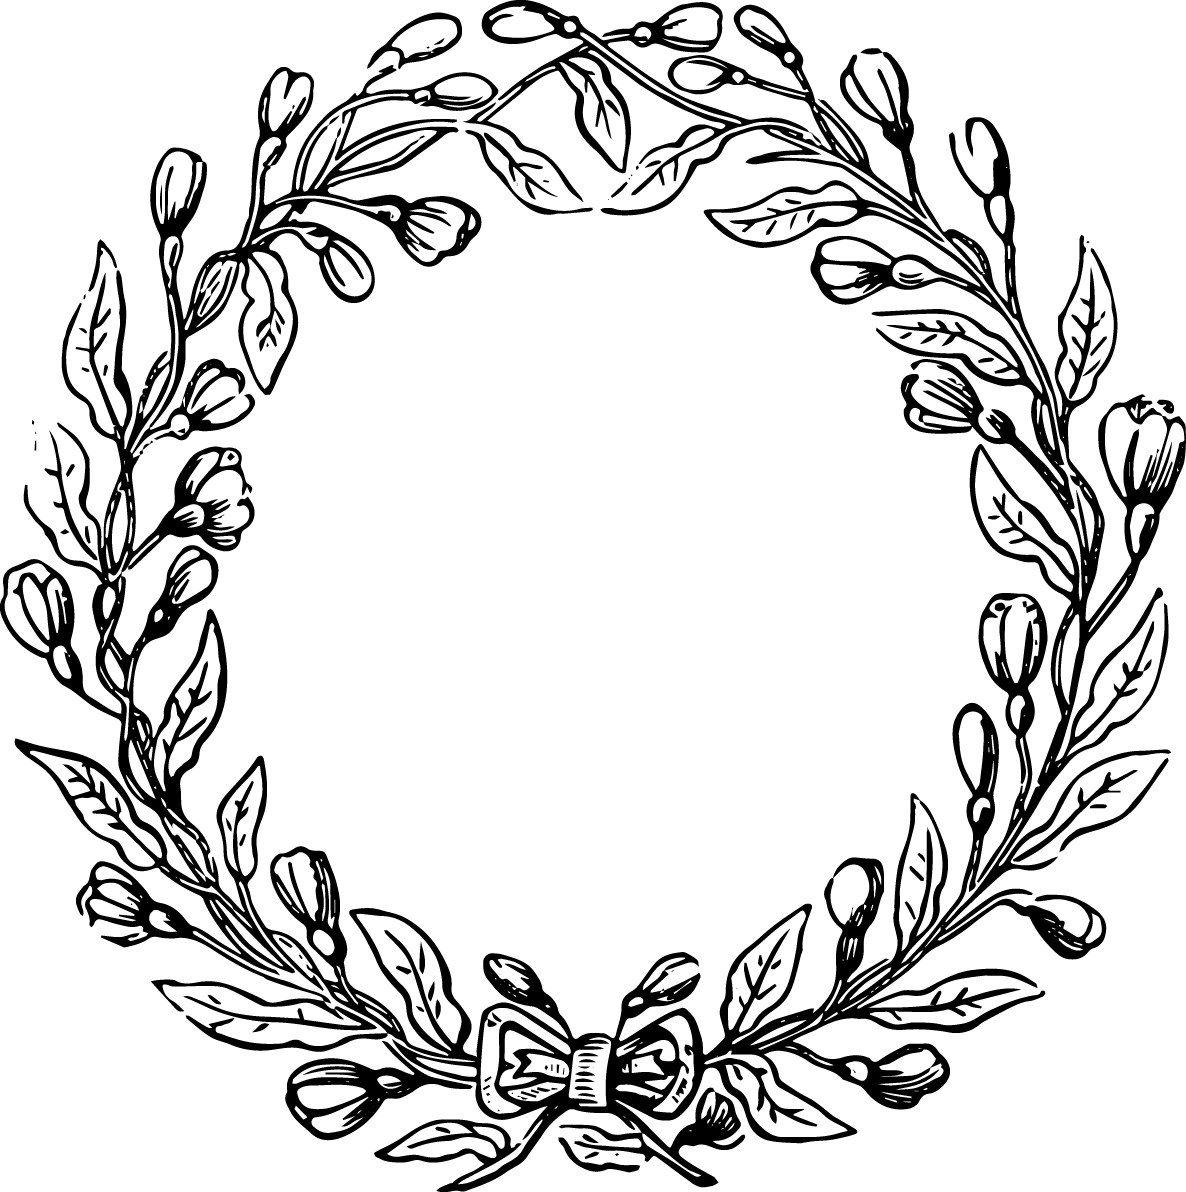 svg royalty free download Floral wreath clipart black and white. Free vector file clip